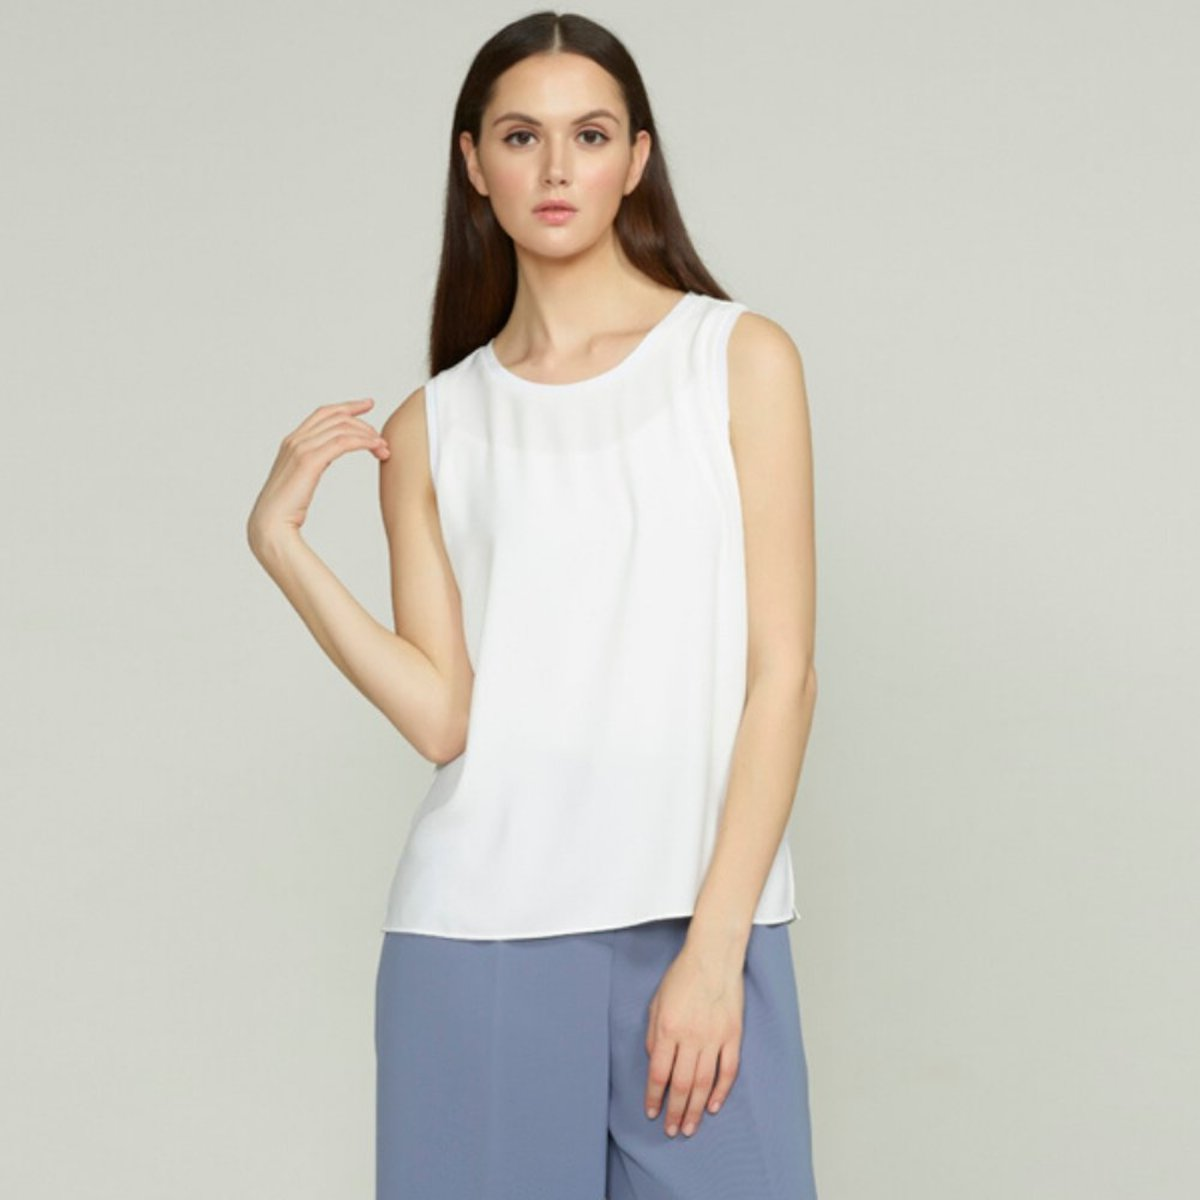 Women's Sleeveless Top with Rib Details (White)